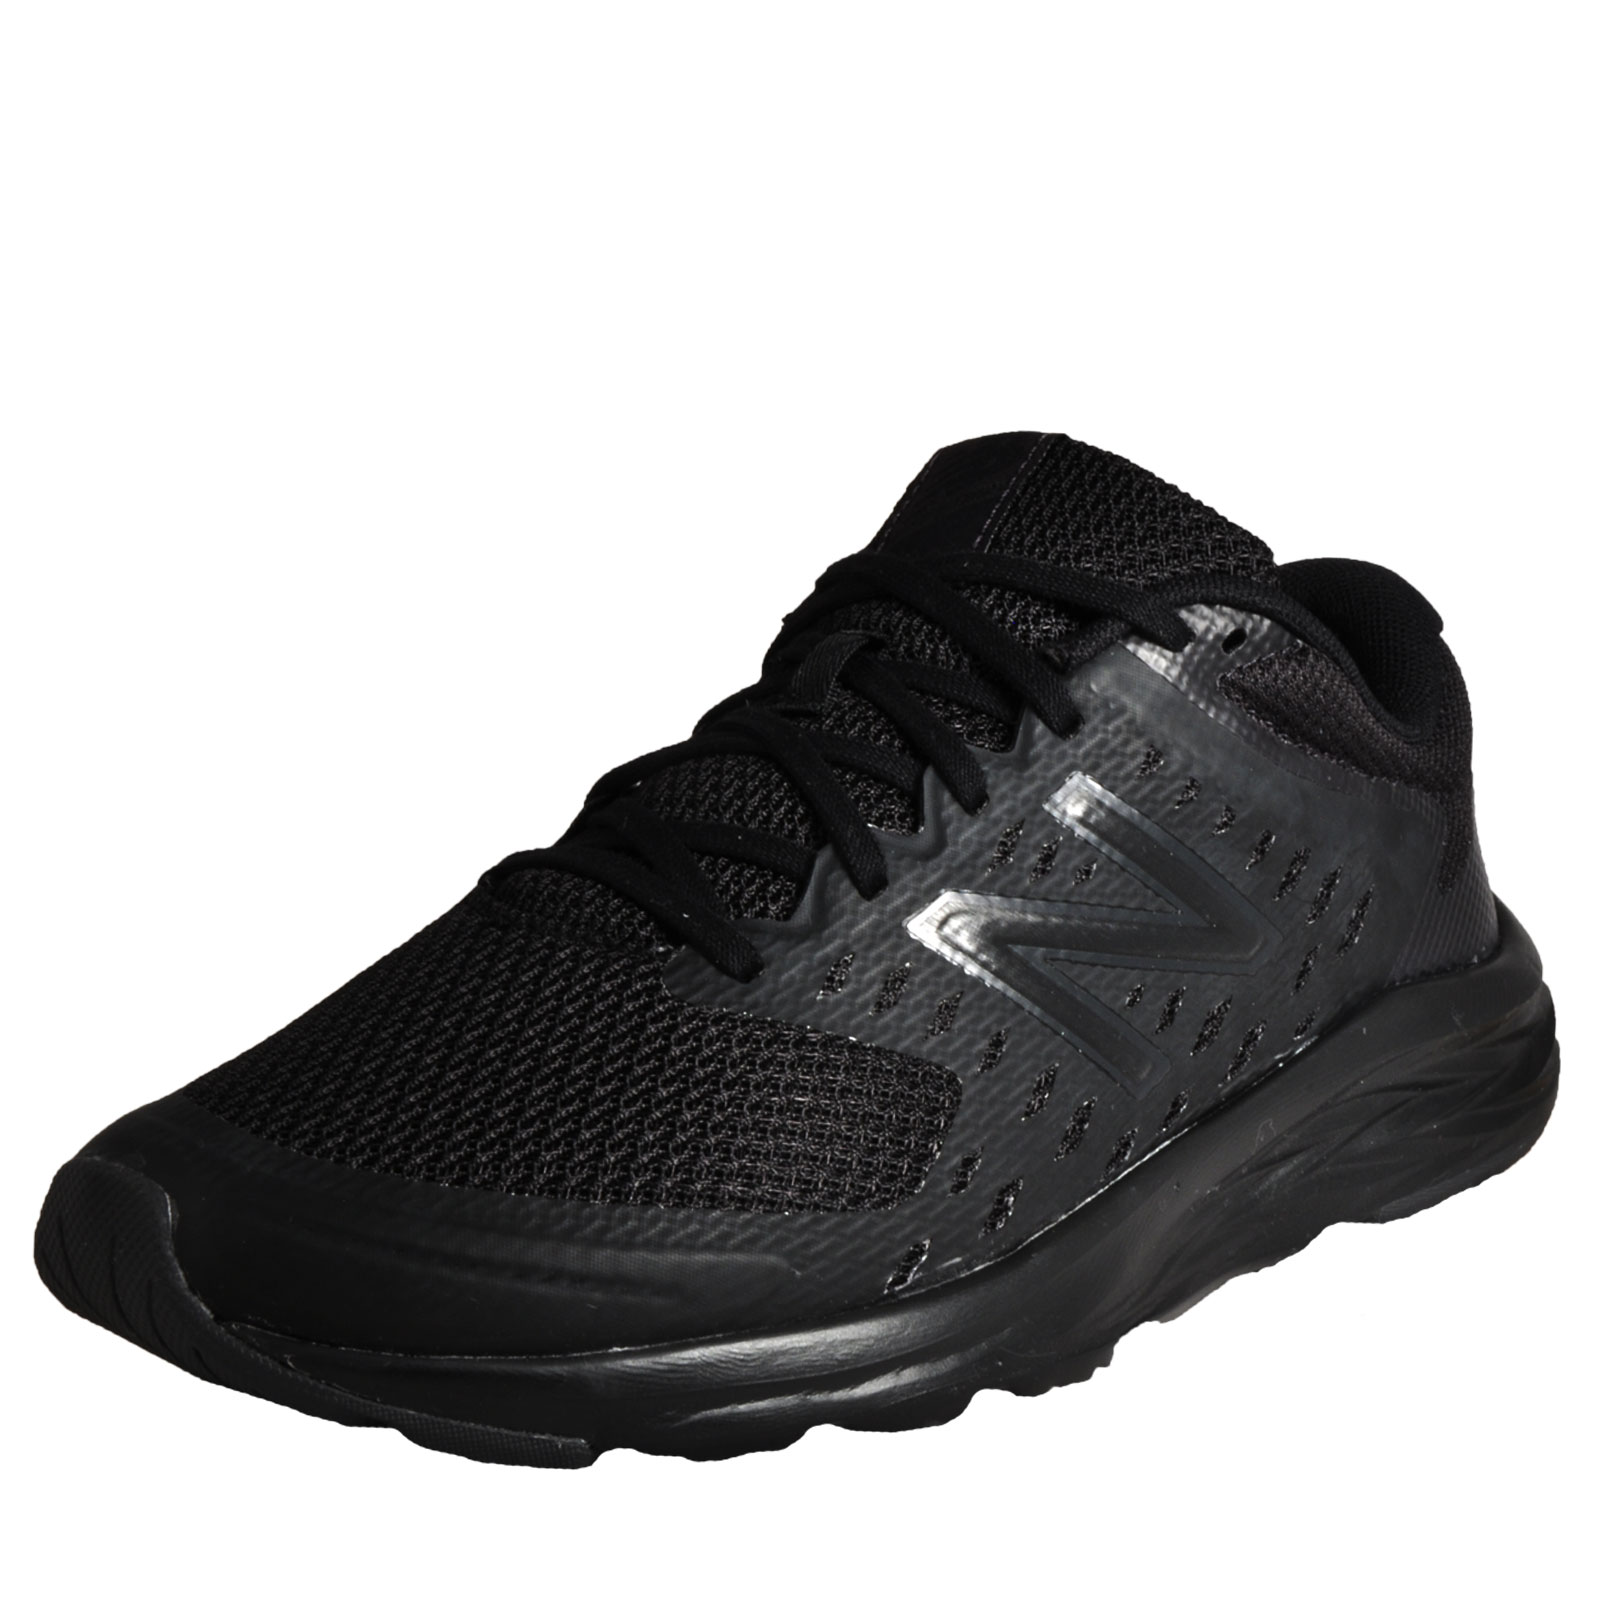 New Balance M490 LK5 Mens Running Shoes Fitness Gym Workout Trainers Black